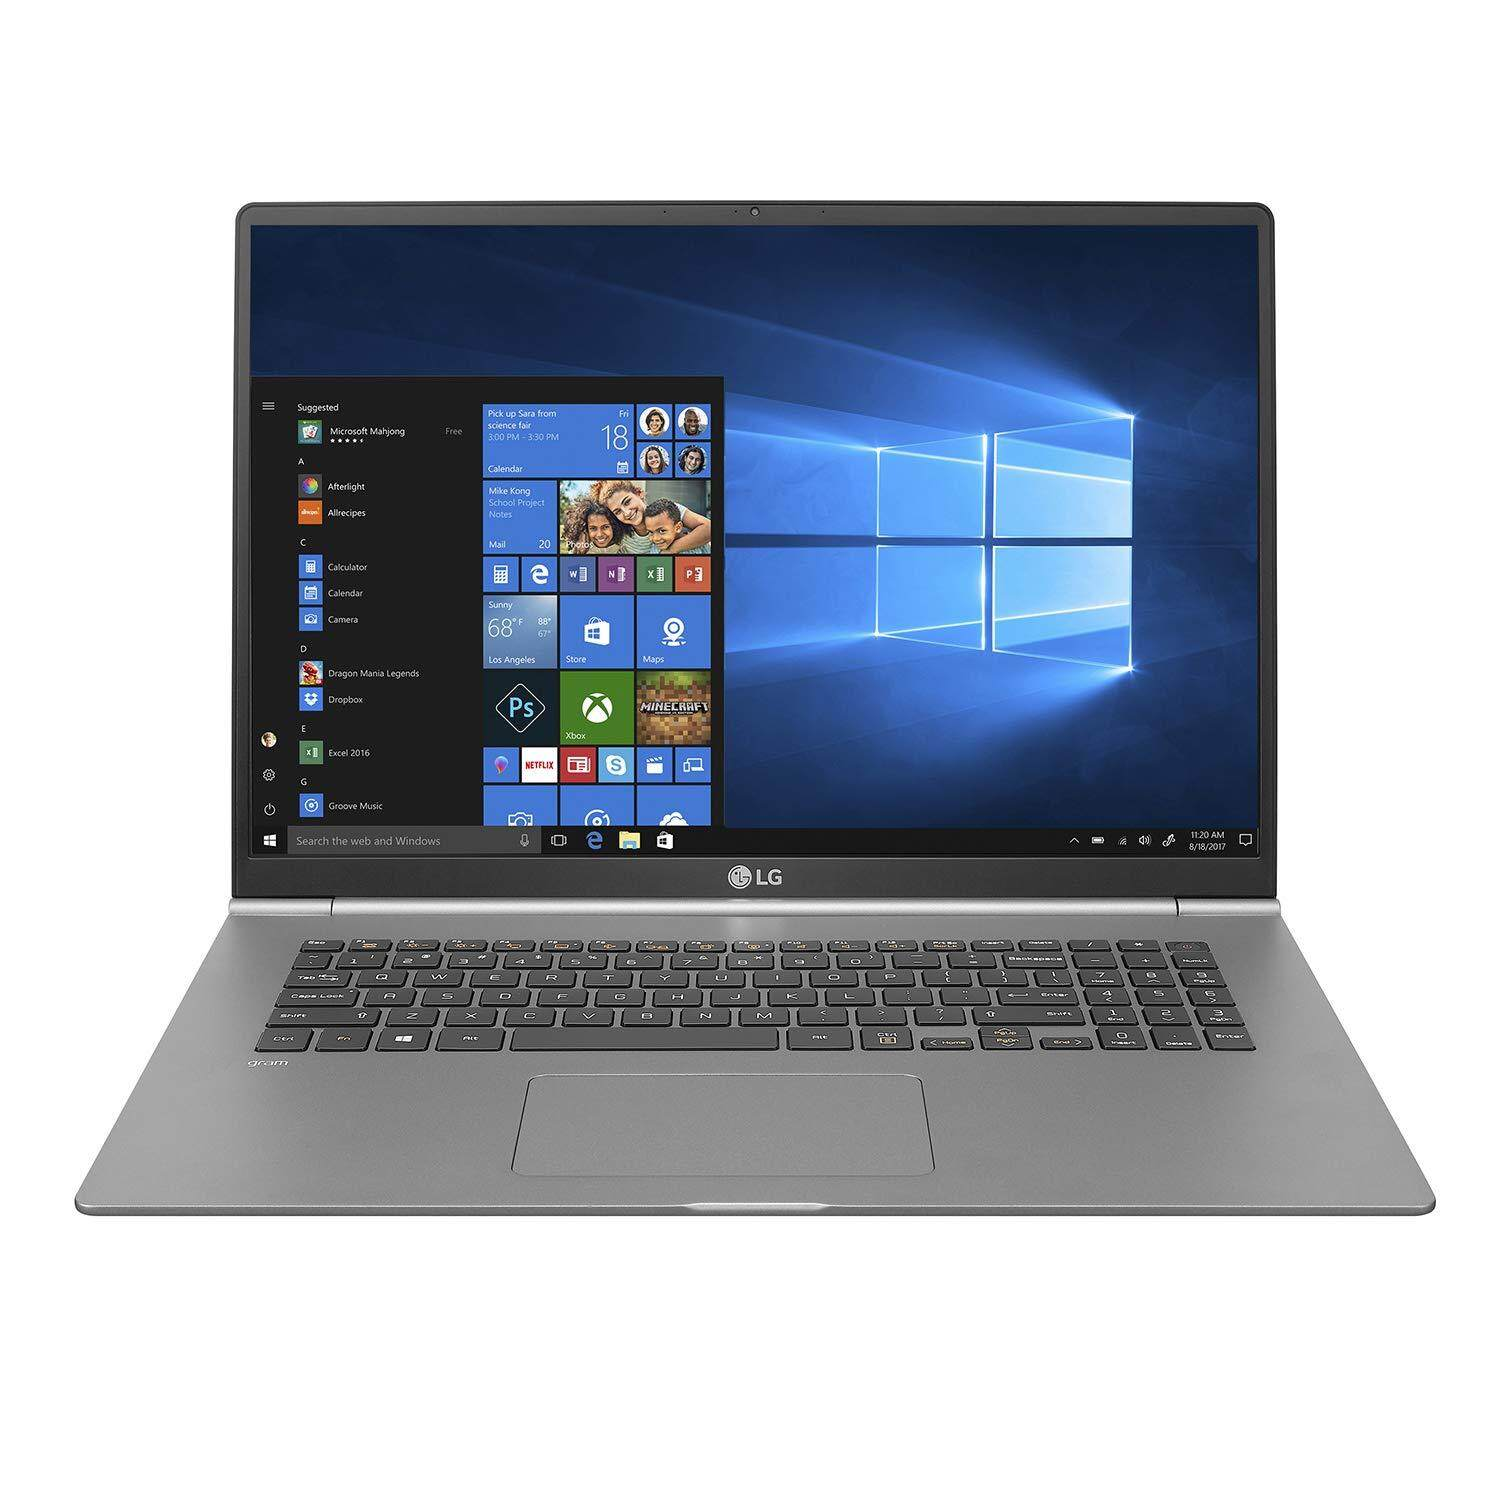 LG gram Thin and Light Laptop - 17  (2560 x 1600) IPS Display, Intel 8th Gen Core i7, 16GB RAM, 512GB SSD, up to 19.5 Hour Battery, Thunderbolt 3 Malaysia